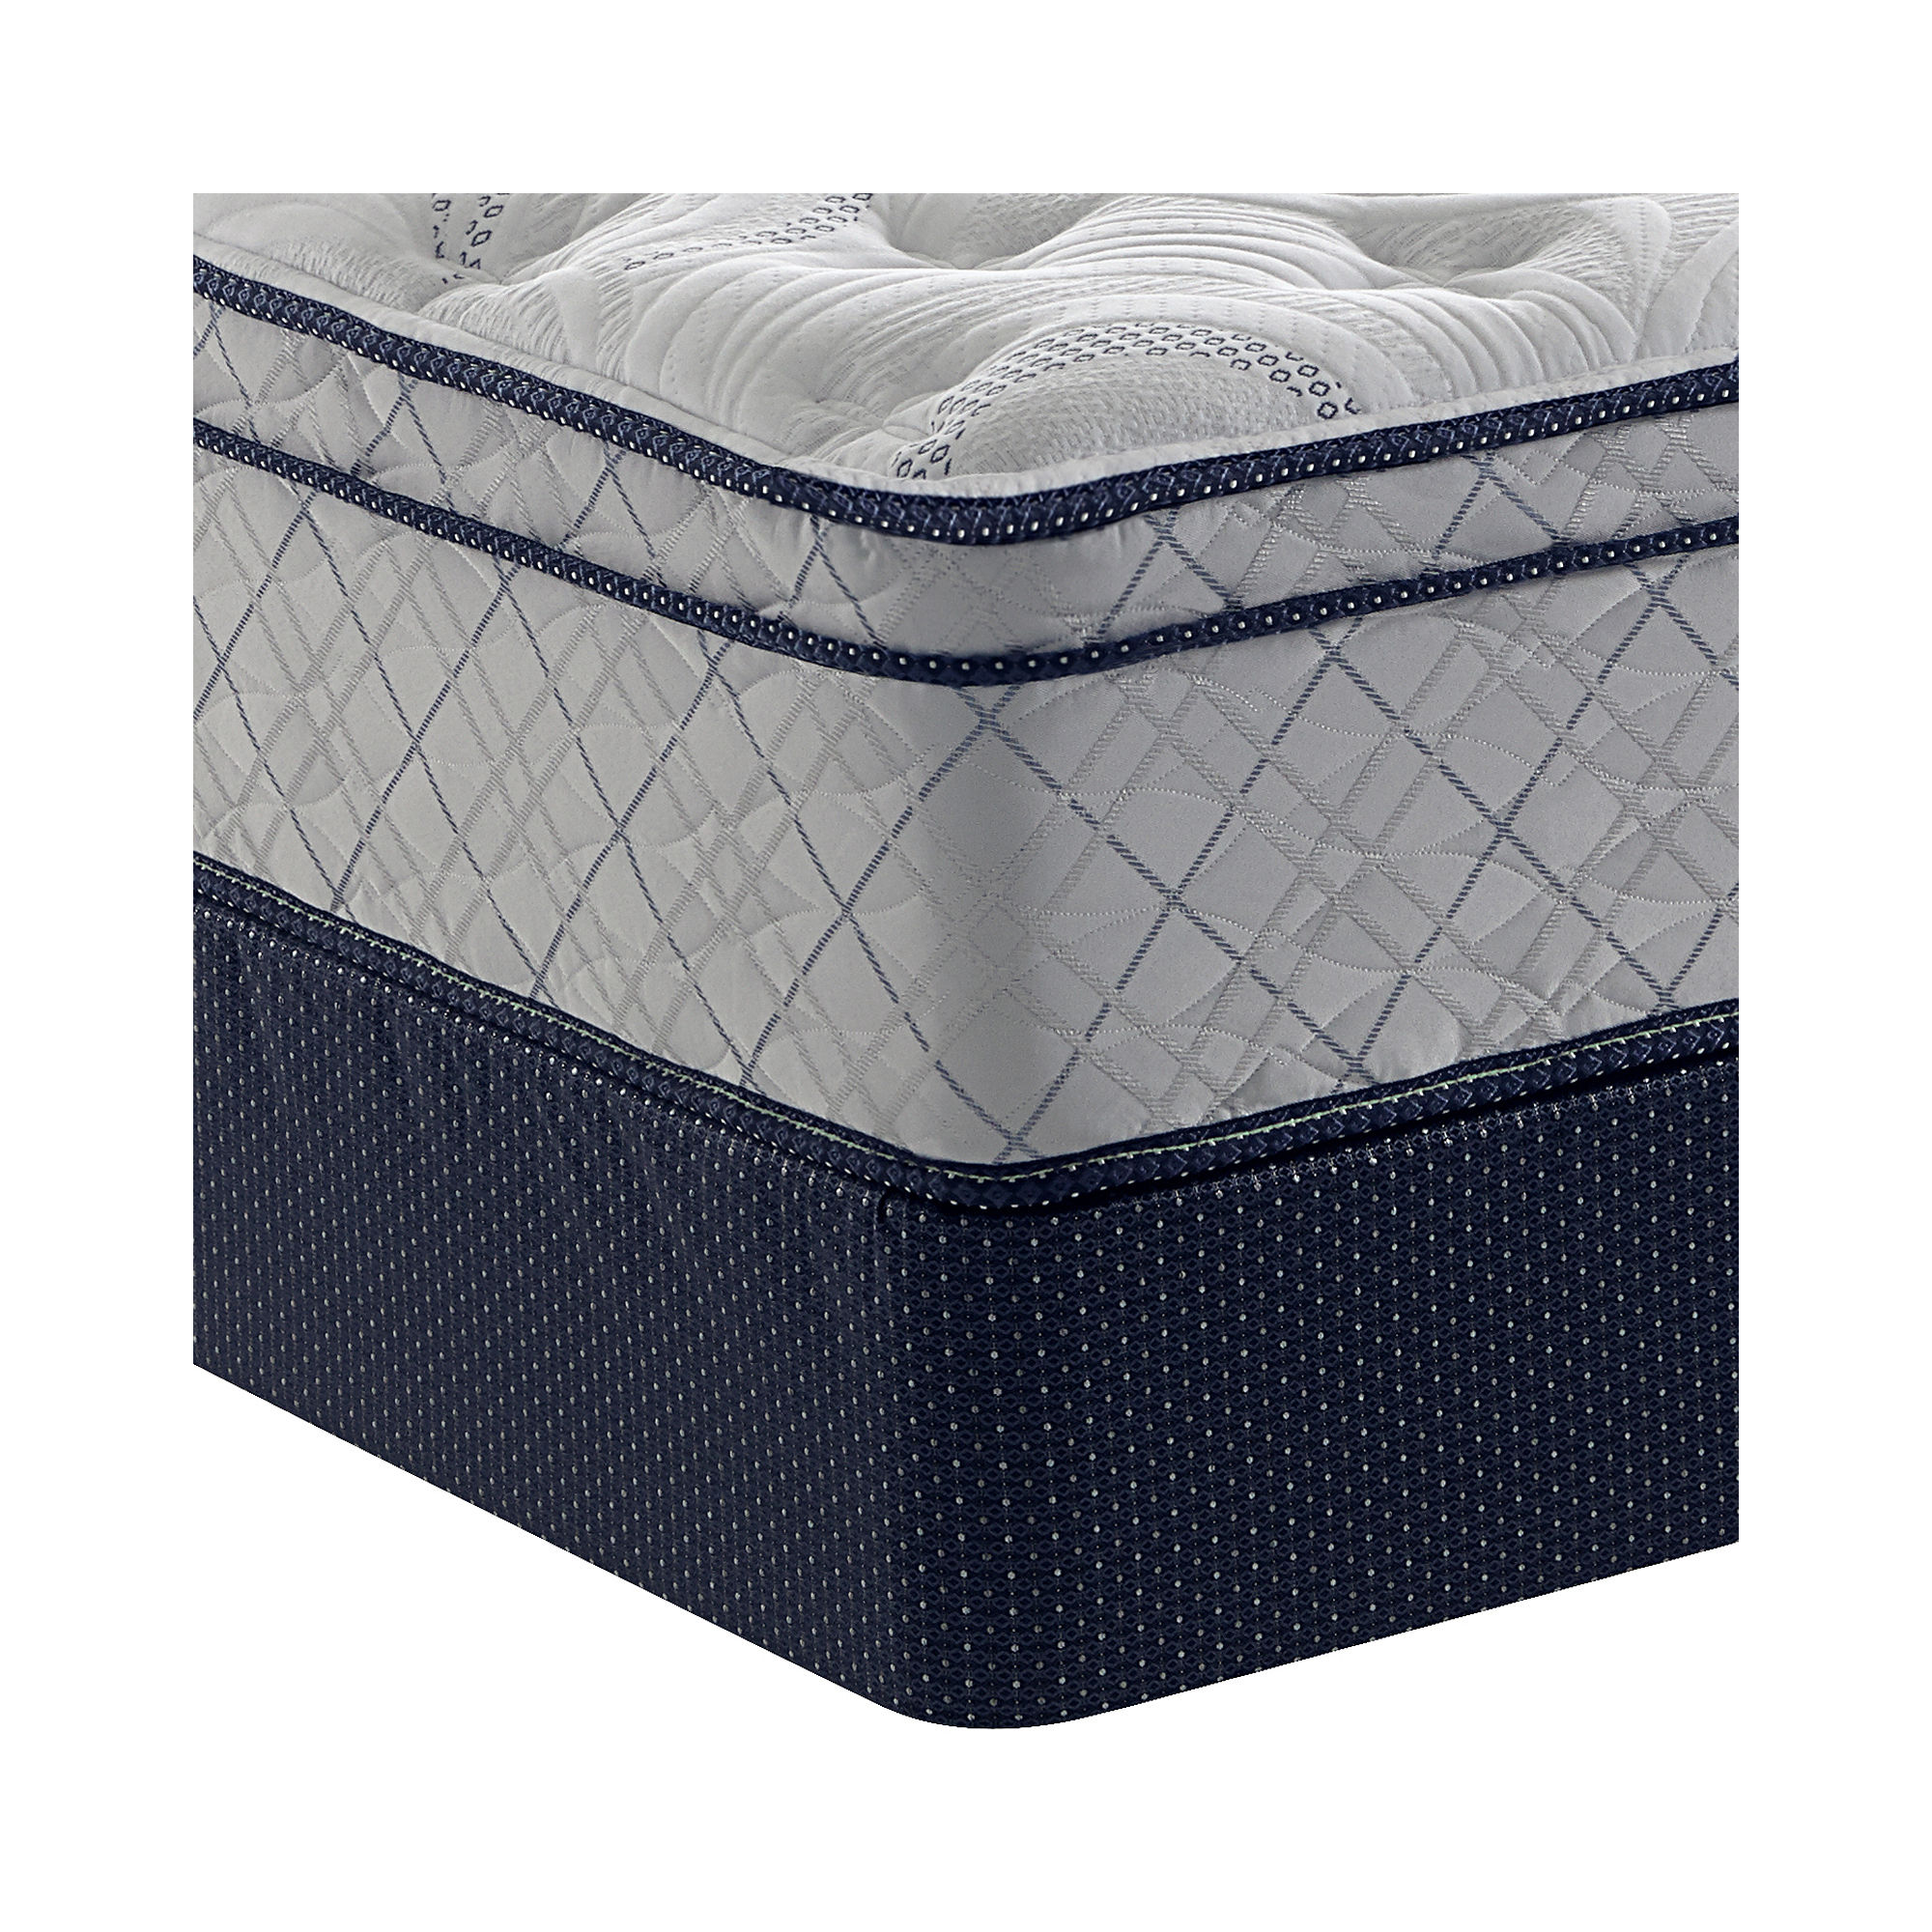 Serta Mattress 237636 310 Perfect Sleeper Inverrary Euro Top Twin Mattress Find It At Shopwiki